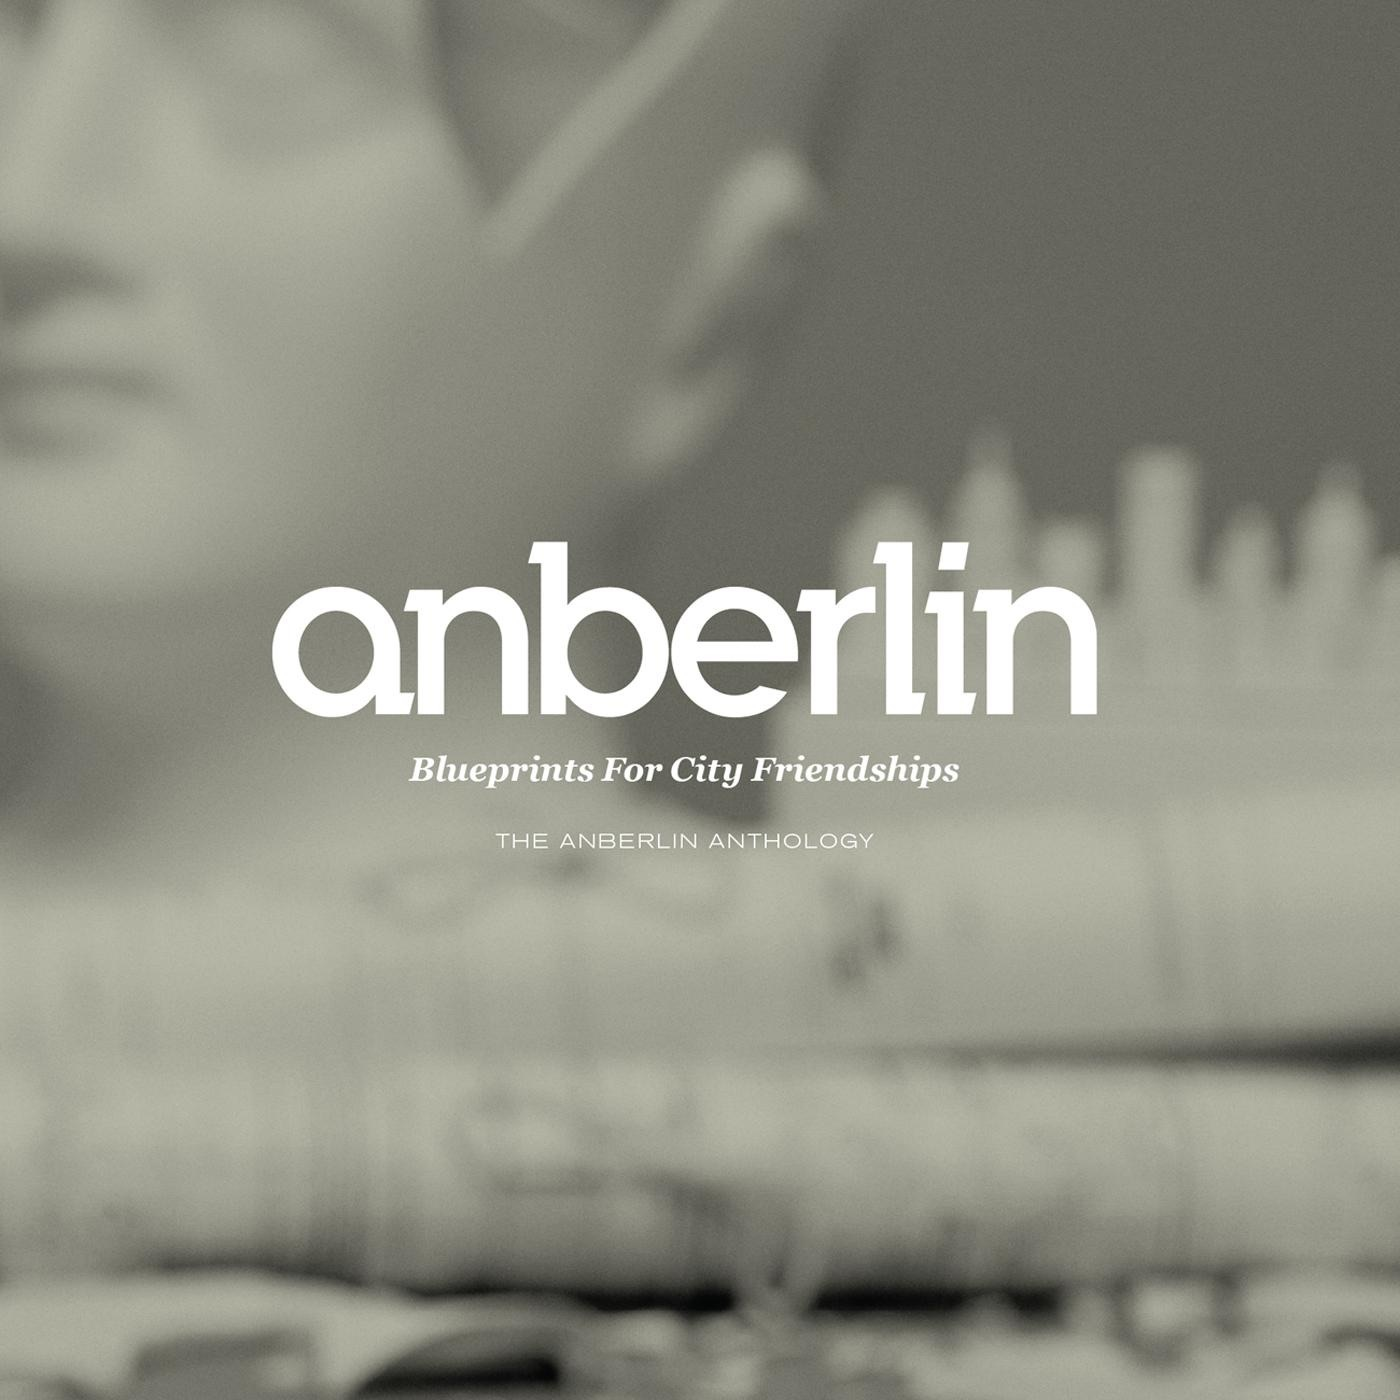 Anberlin album Blueprints For City Friendships: The Anberlin Anthology